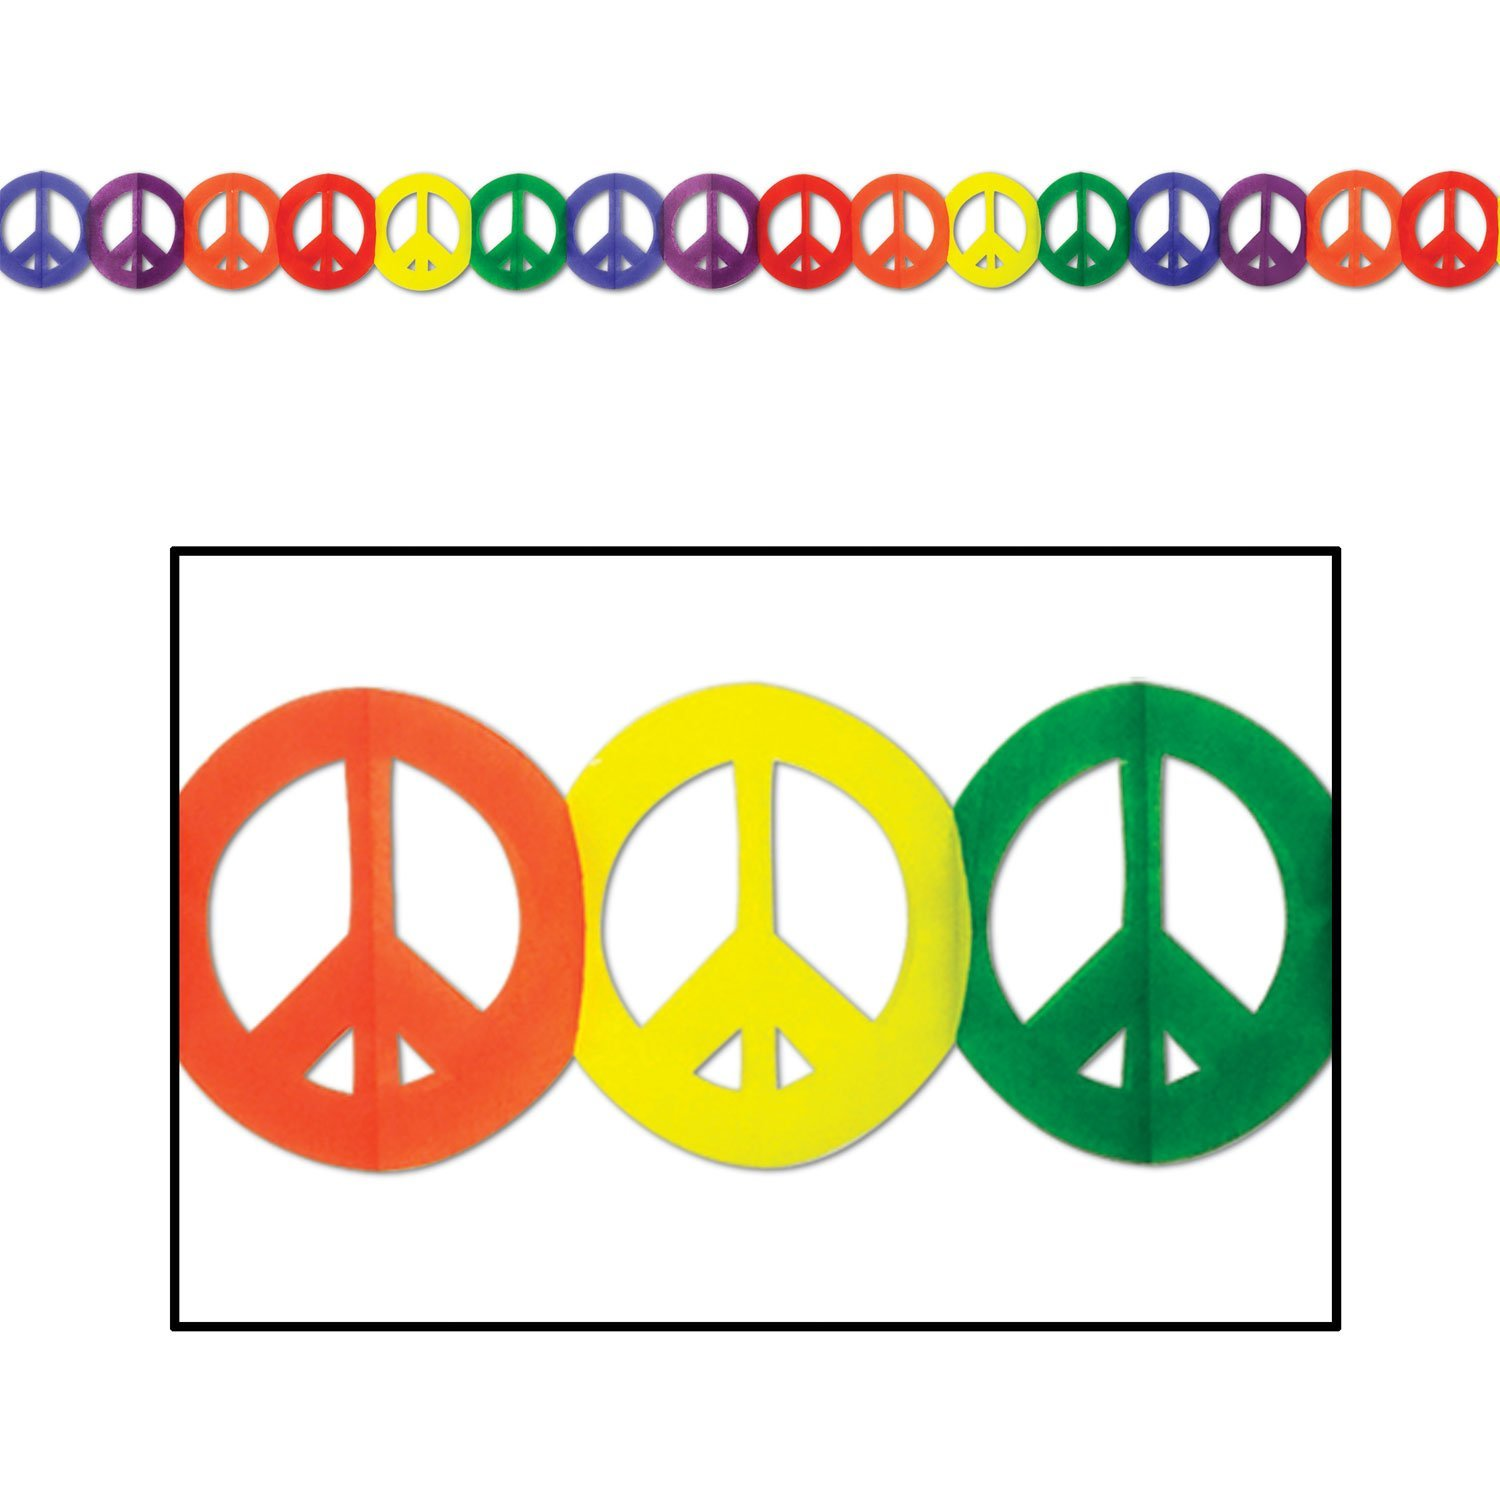 Beistle 57669 1-Pack Peace Sign Garland, 5-3/4-Inch by 12-Feet